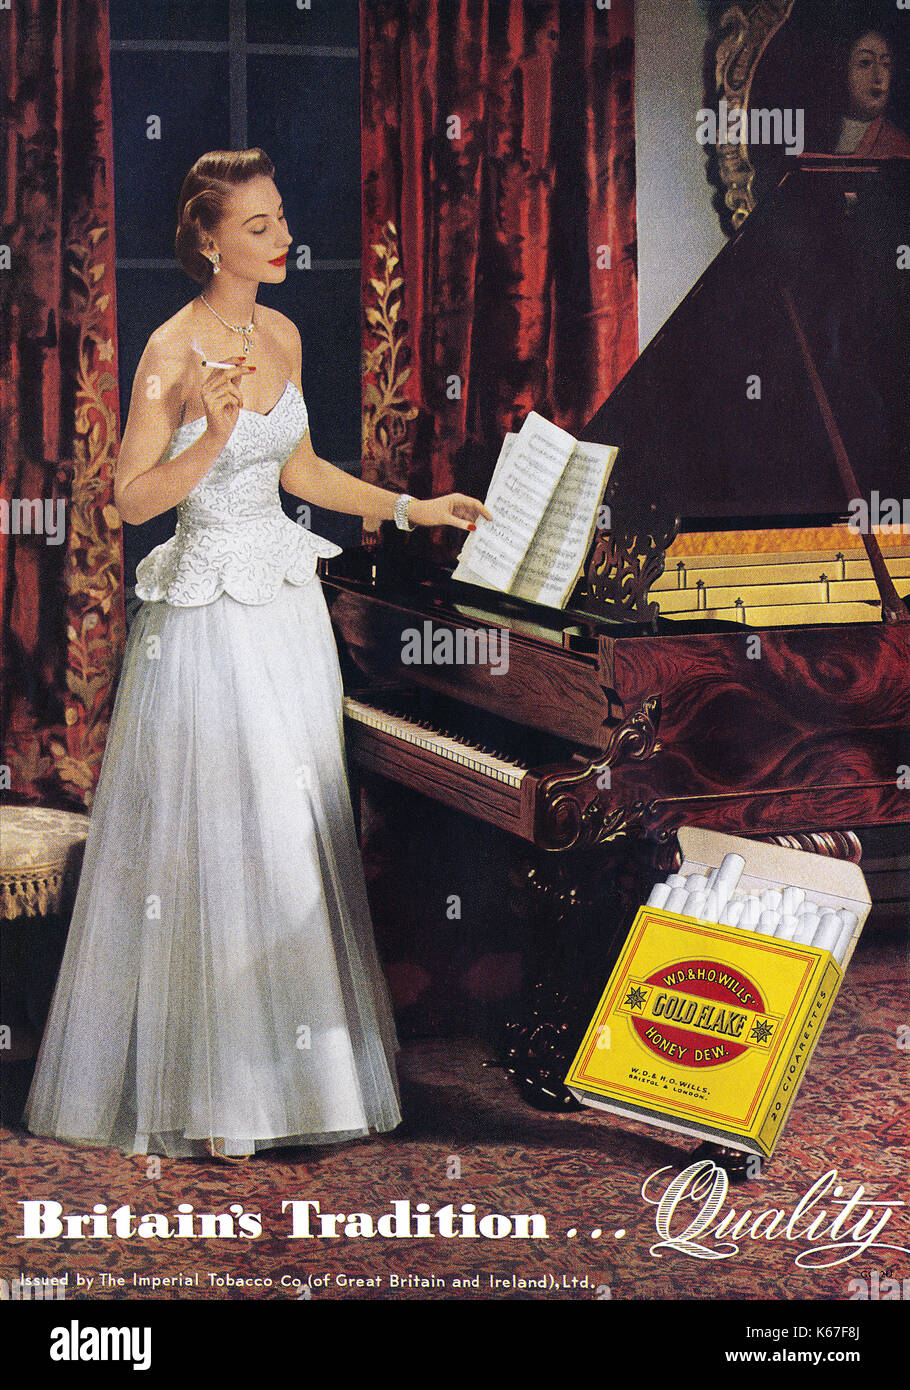 1949 British advertisement for W.O. & H.O. Wills Gold Flake cigarettes. - Stock Image